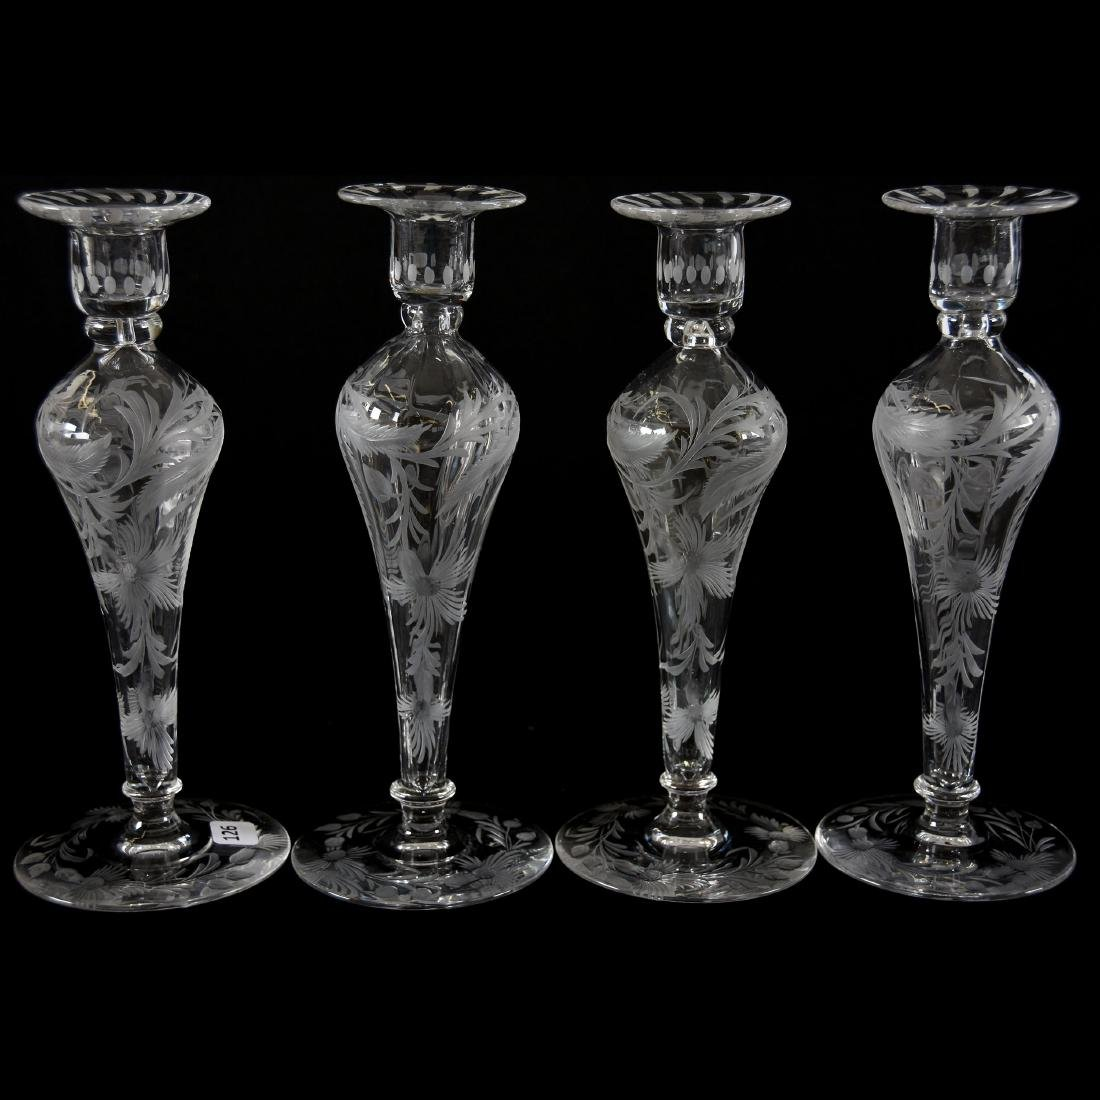 (2) Pair Candlesticks, Signed Libbey, Engraved Floral